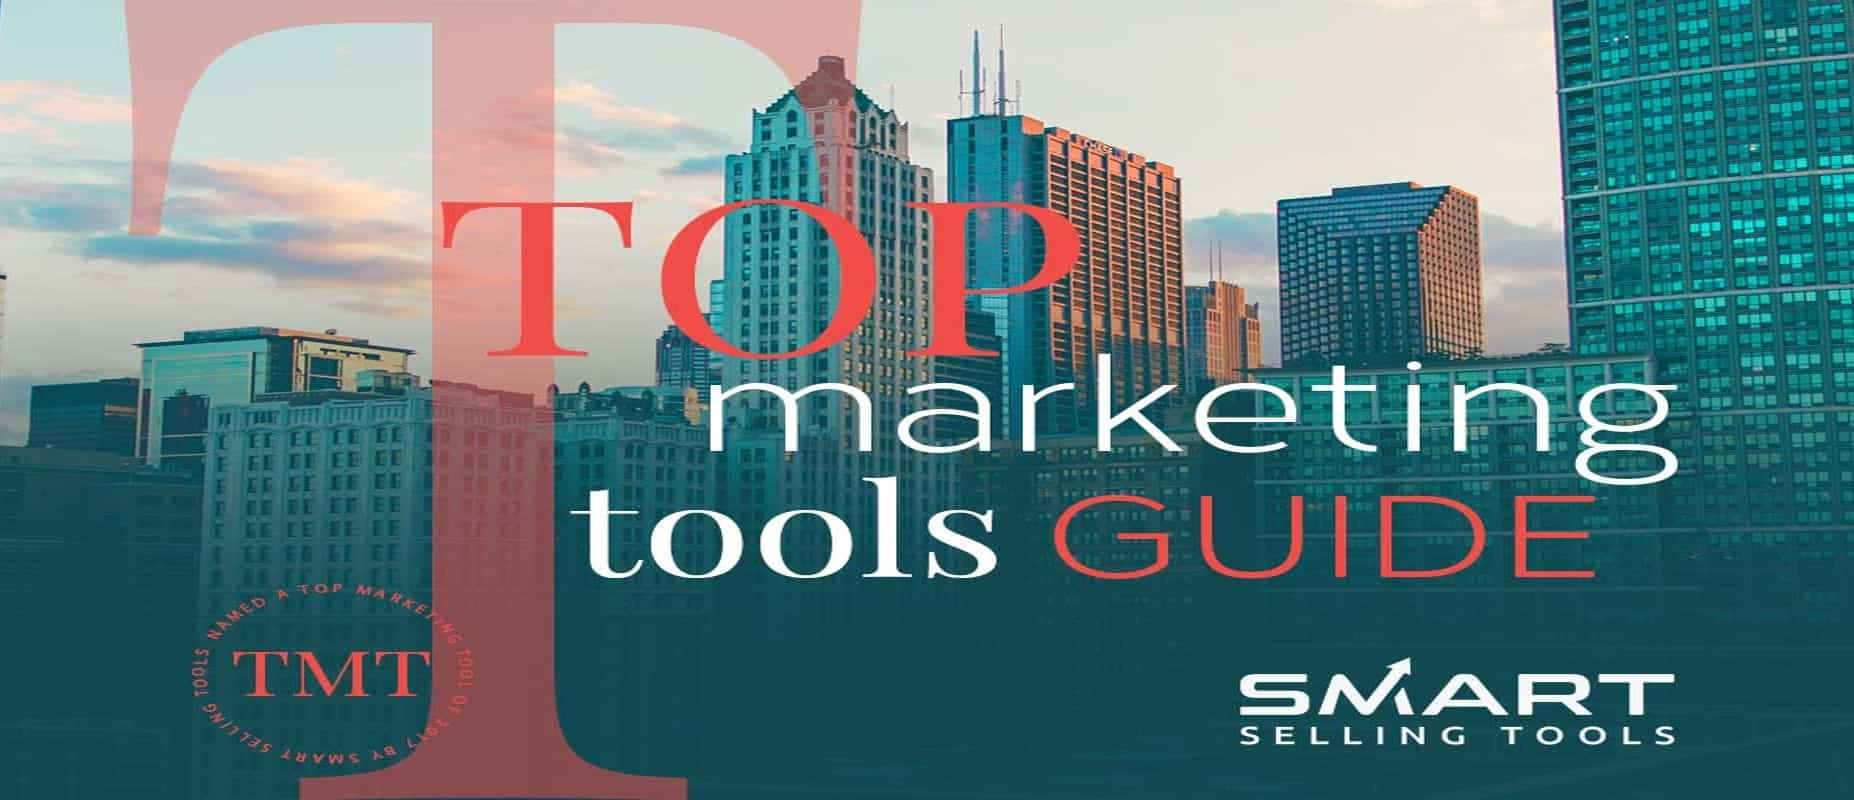 Agent3 Named as Smart Selling Tools 2017 Top Marketing Tool in the Account Based Marketing Category